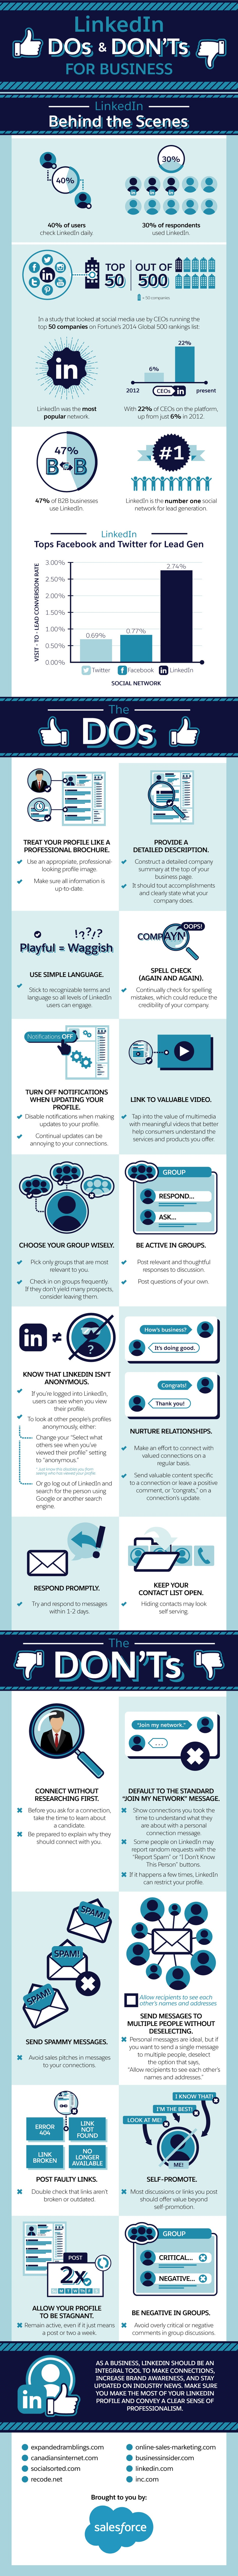 LinkedIn Business Dos and Don'ts Infographic